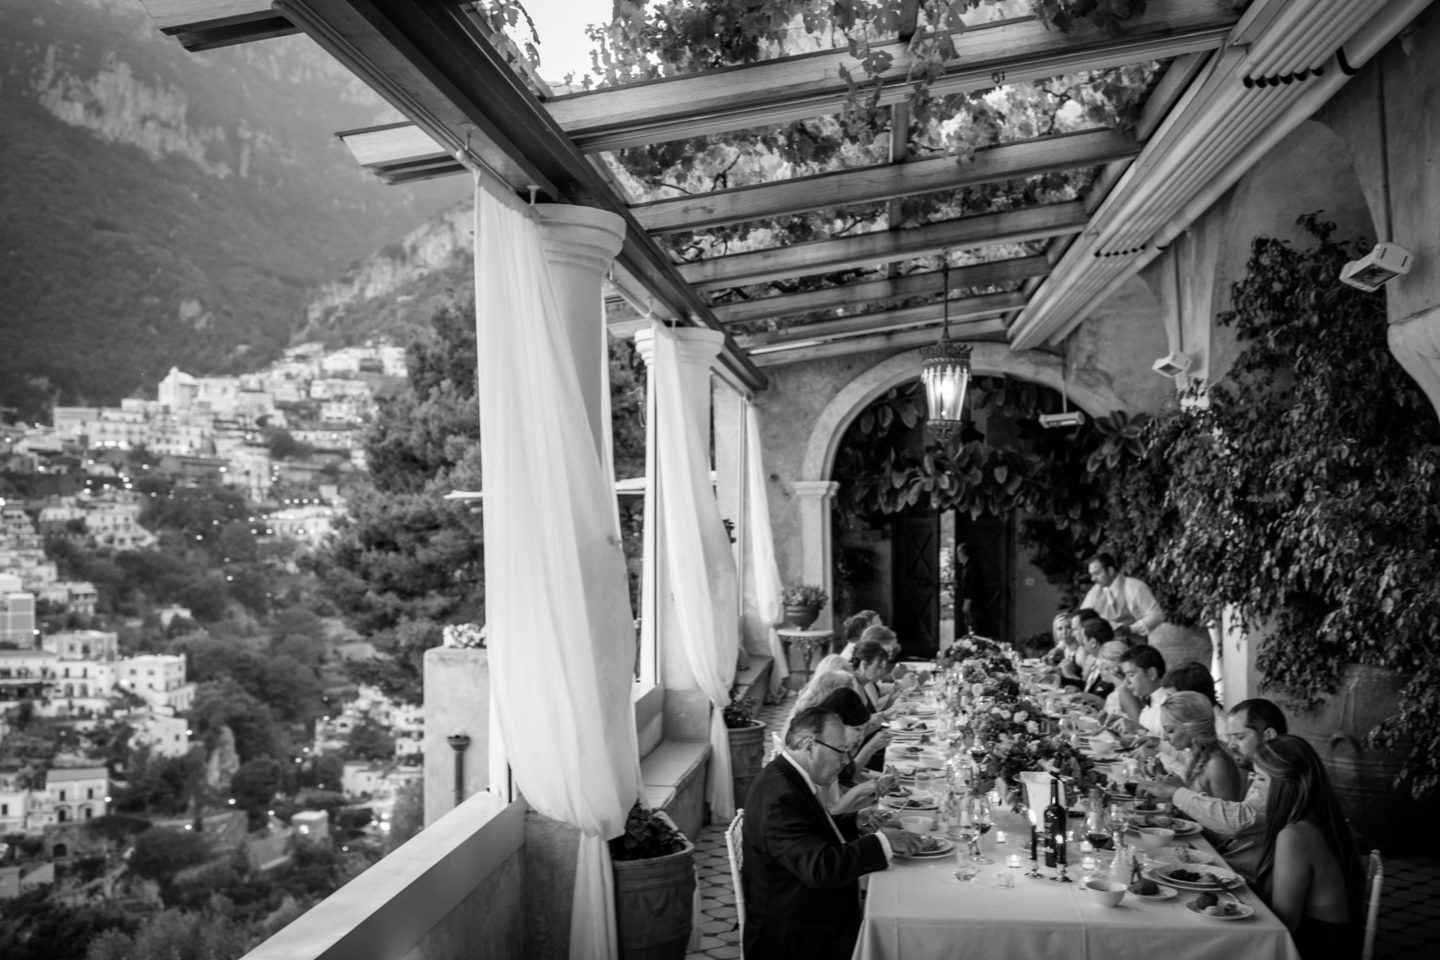 Invited :: Wedding in Positano. Sea and love :: Wedding photographer based in Florence Tuscany Italy :: photo-56 :: Invited